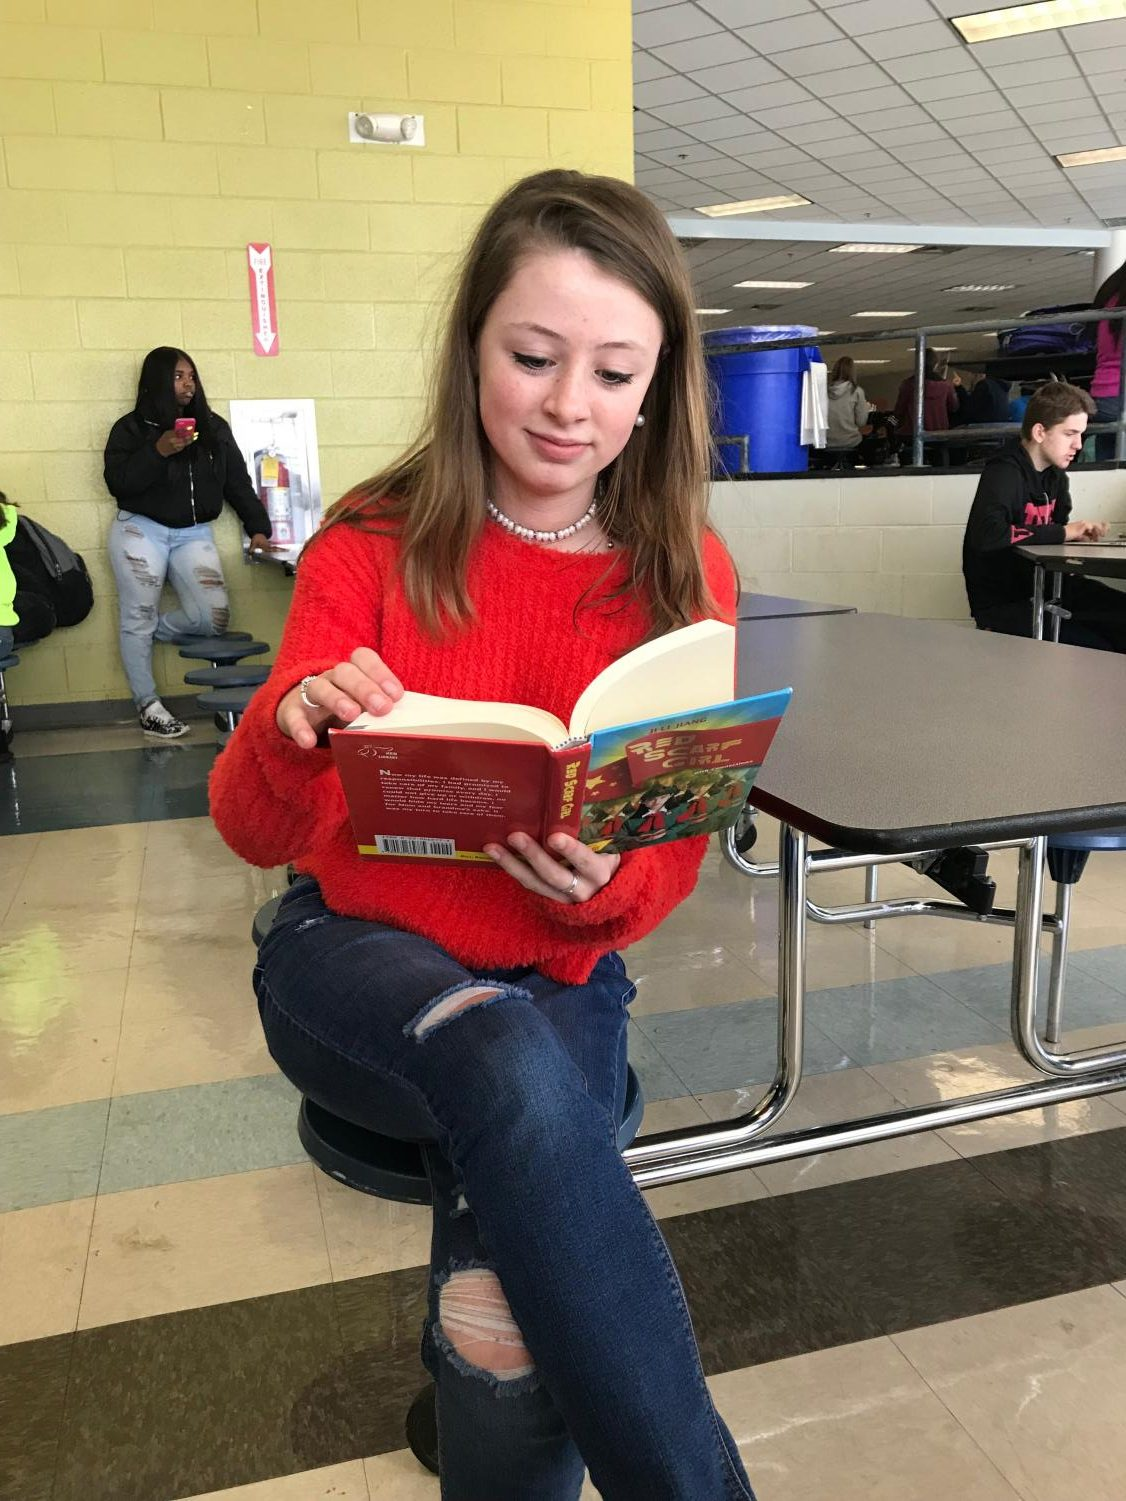 Reading a paperback book, Lily Morrow sits in the cafeteria oblivious to the world around her and absorbed with the story she is reading. This is just one example of how books and reading can impact our lives.